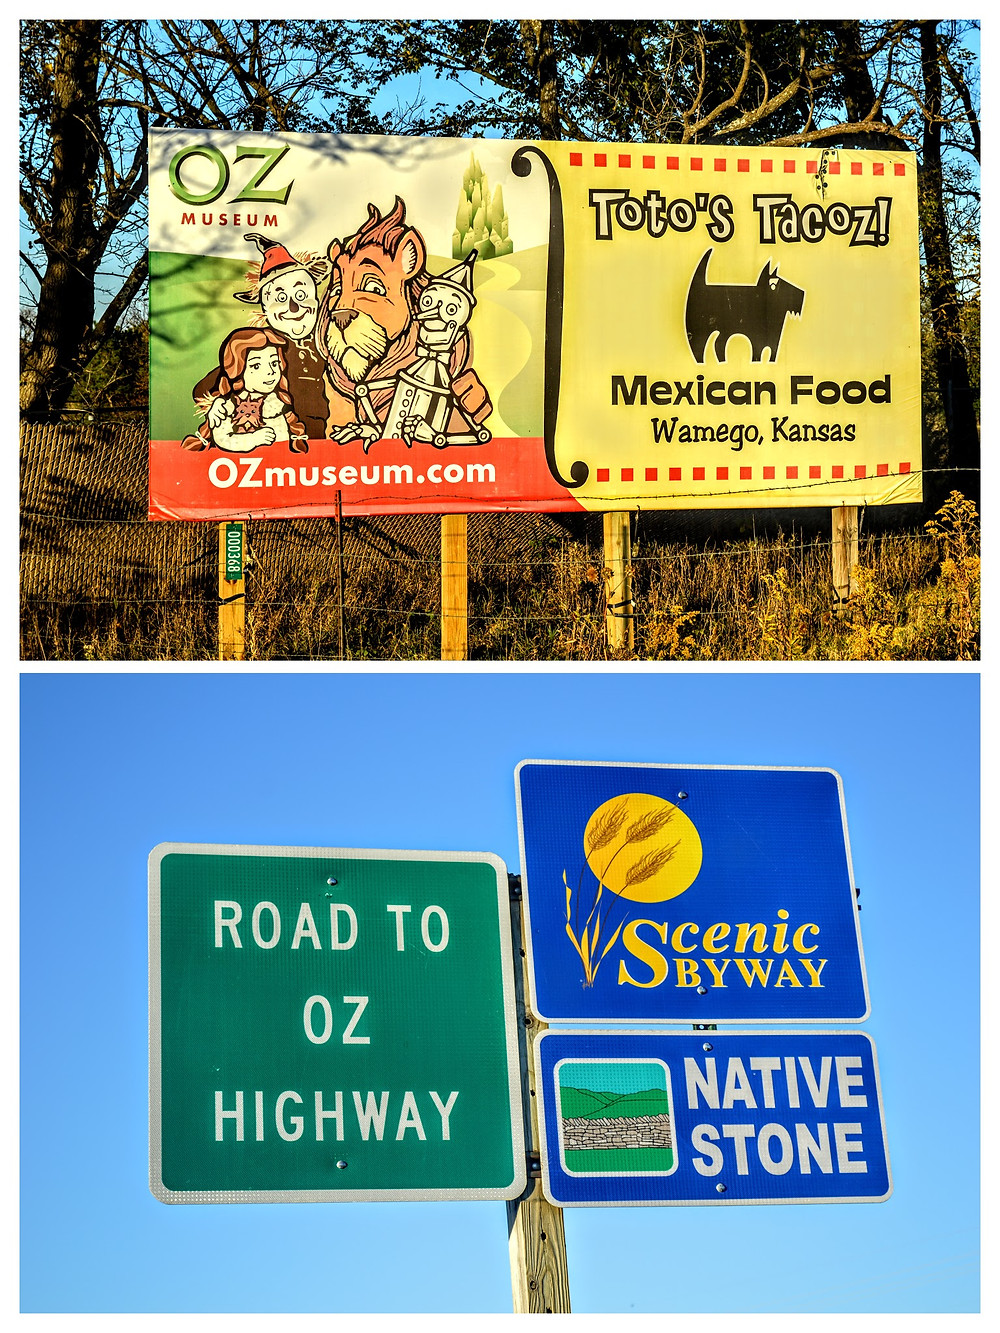 Signs for the Oz Museum and Toto's Tocoz off of highway 99, near Wamego Kansas